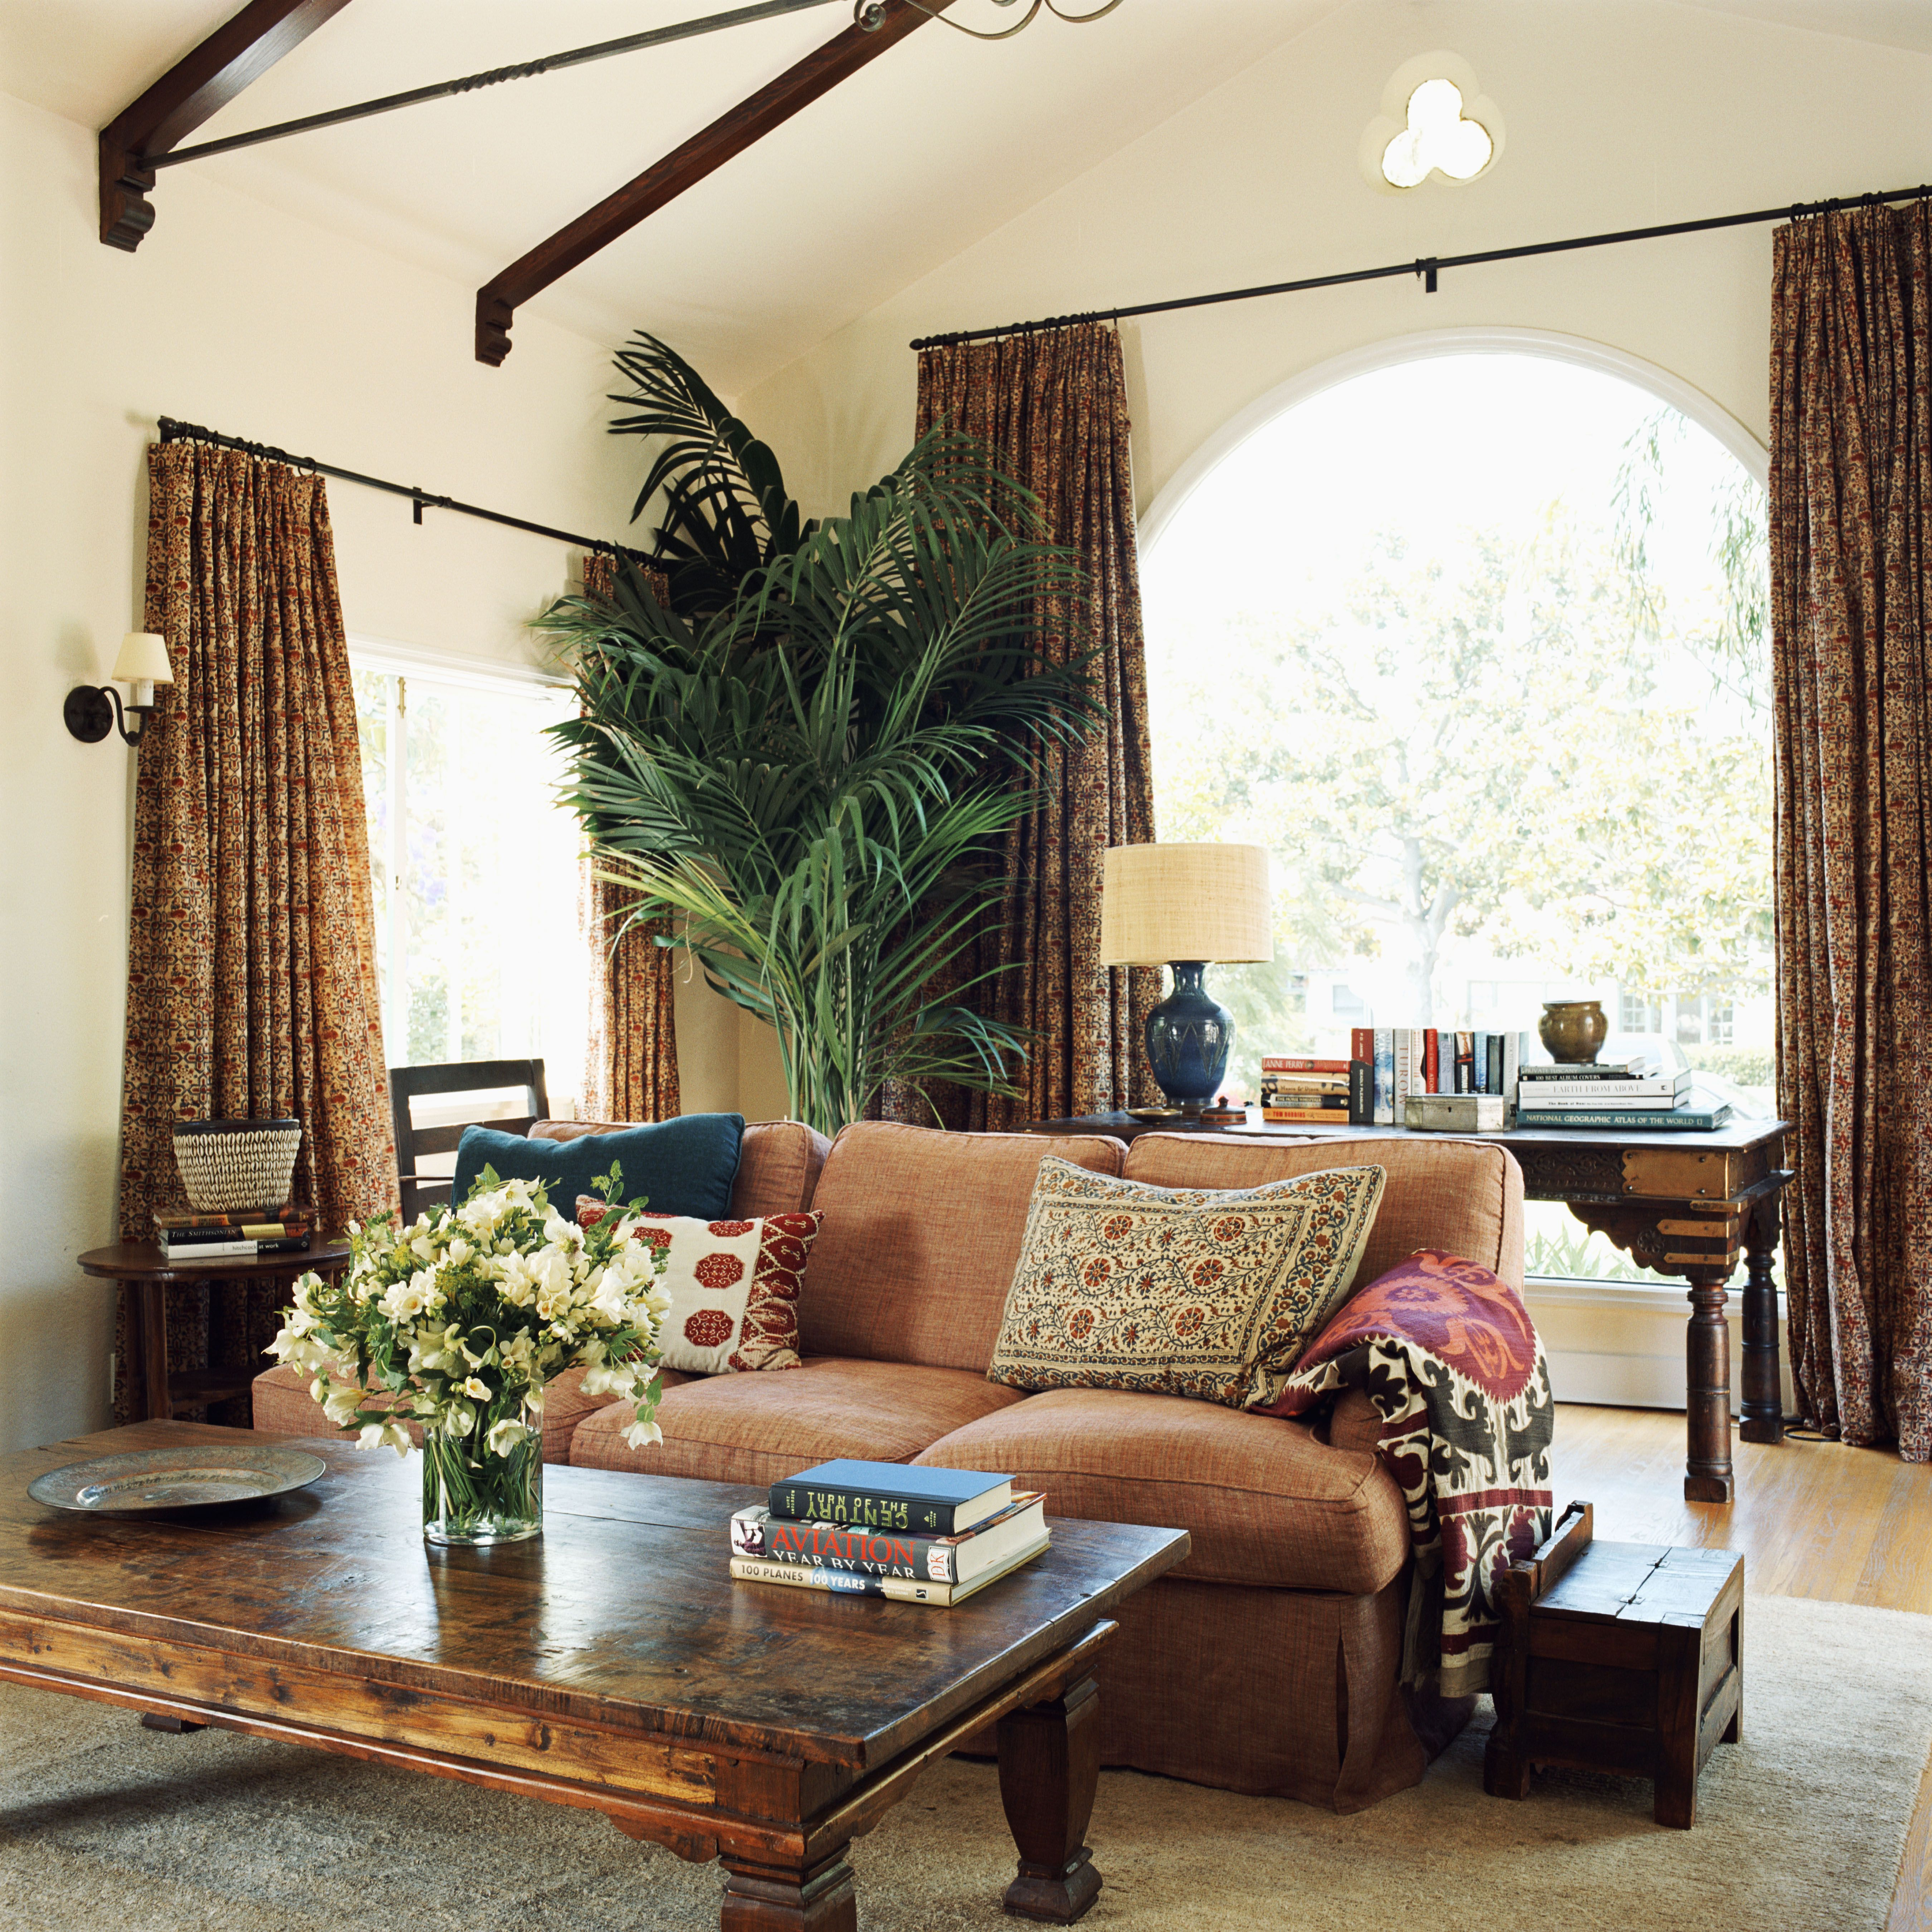 Interior Design By Anna Hackathorn Living Room Curtains On Tall Windows Palm Tree Tall P Interior Design Interior Design Living Room Interior Design Styles